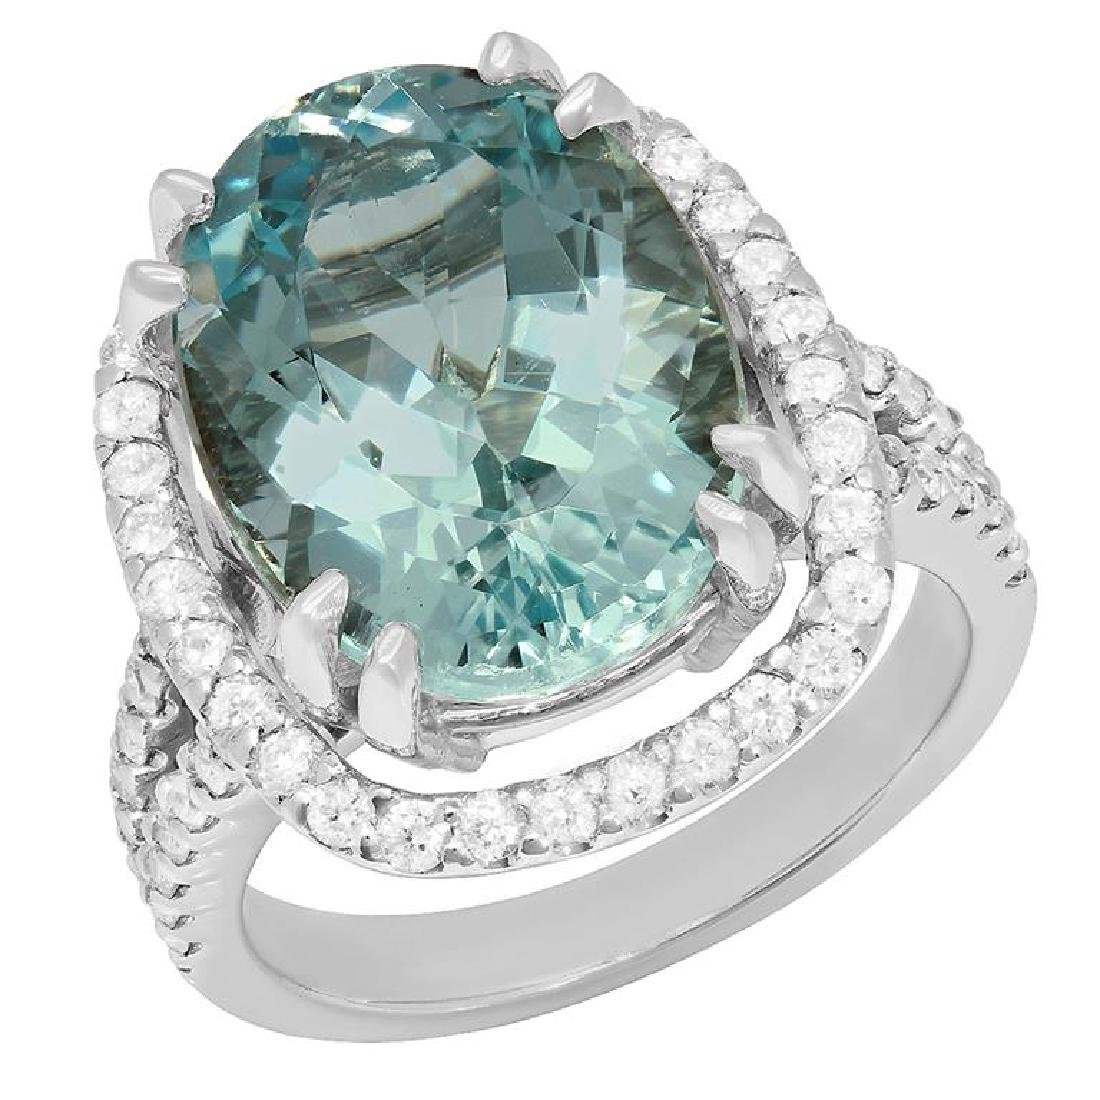 14k White Gold 9.75ct Aquamarine 1.02ct Diamond Ring